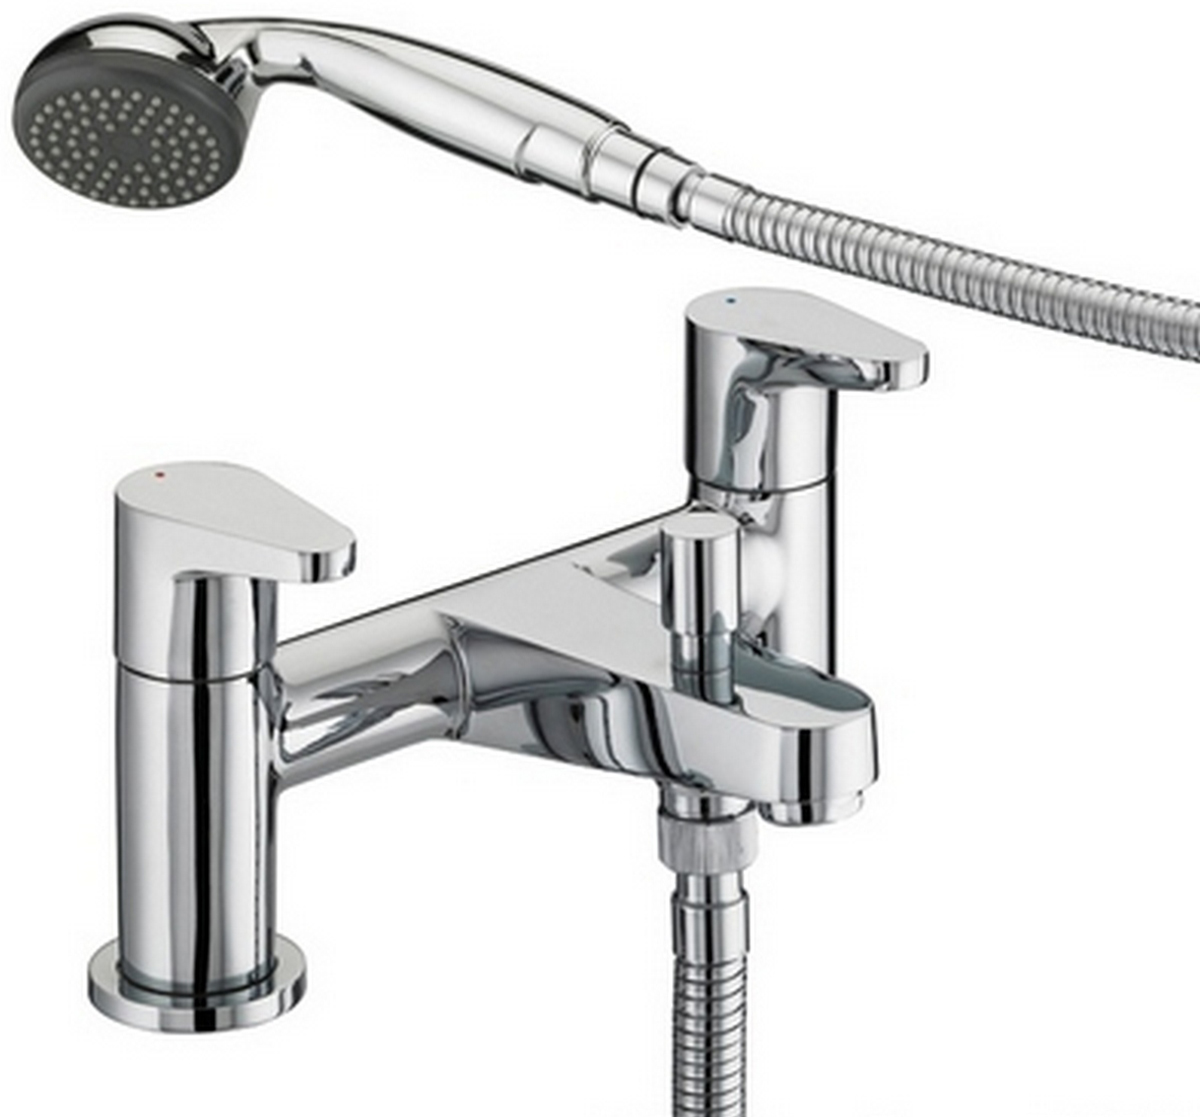 Bath Shower Mixer - 8 Litre Flow Limit